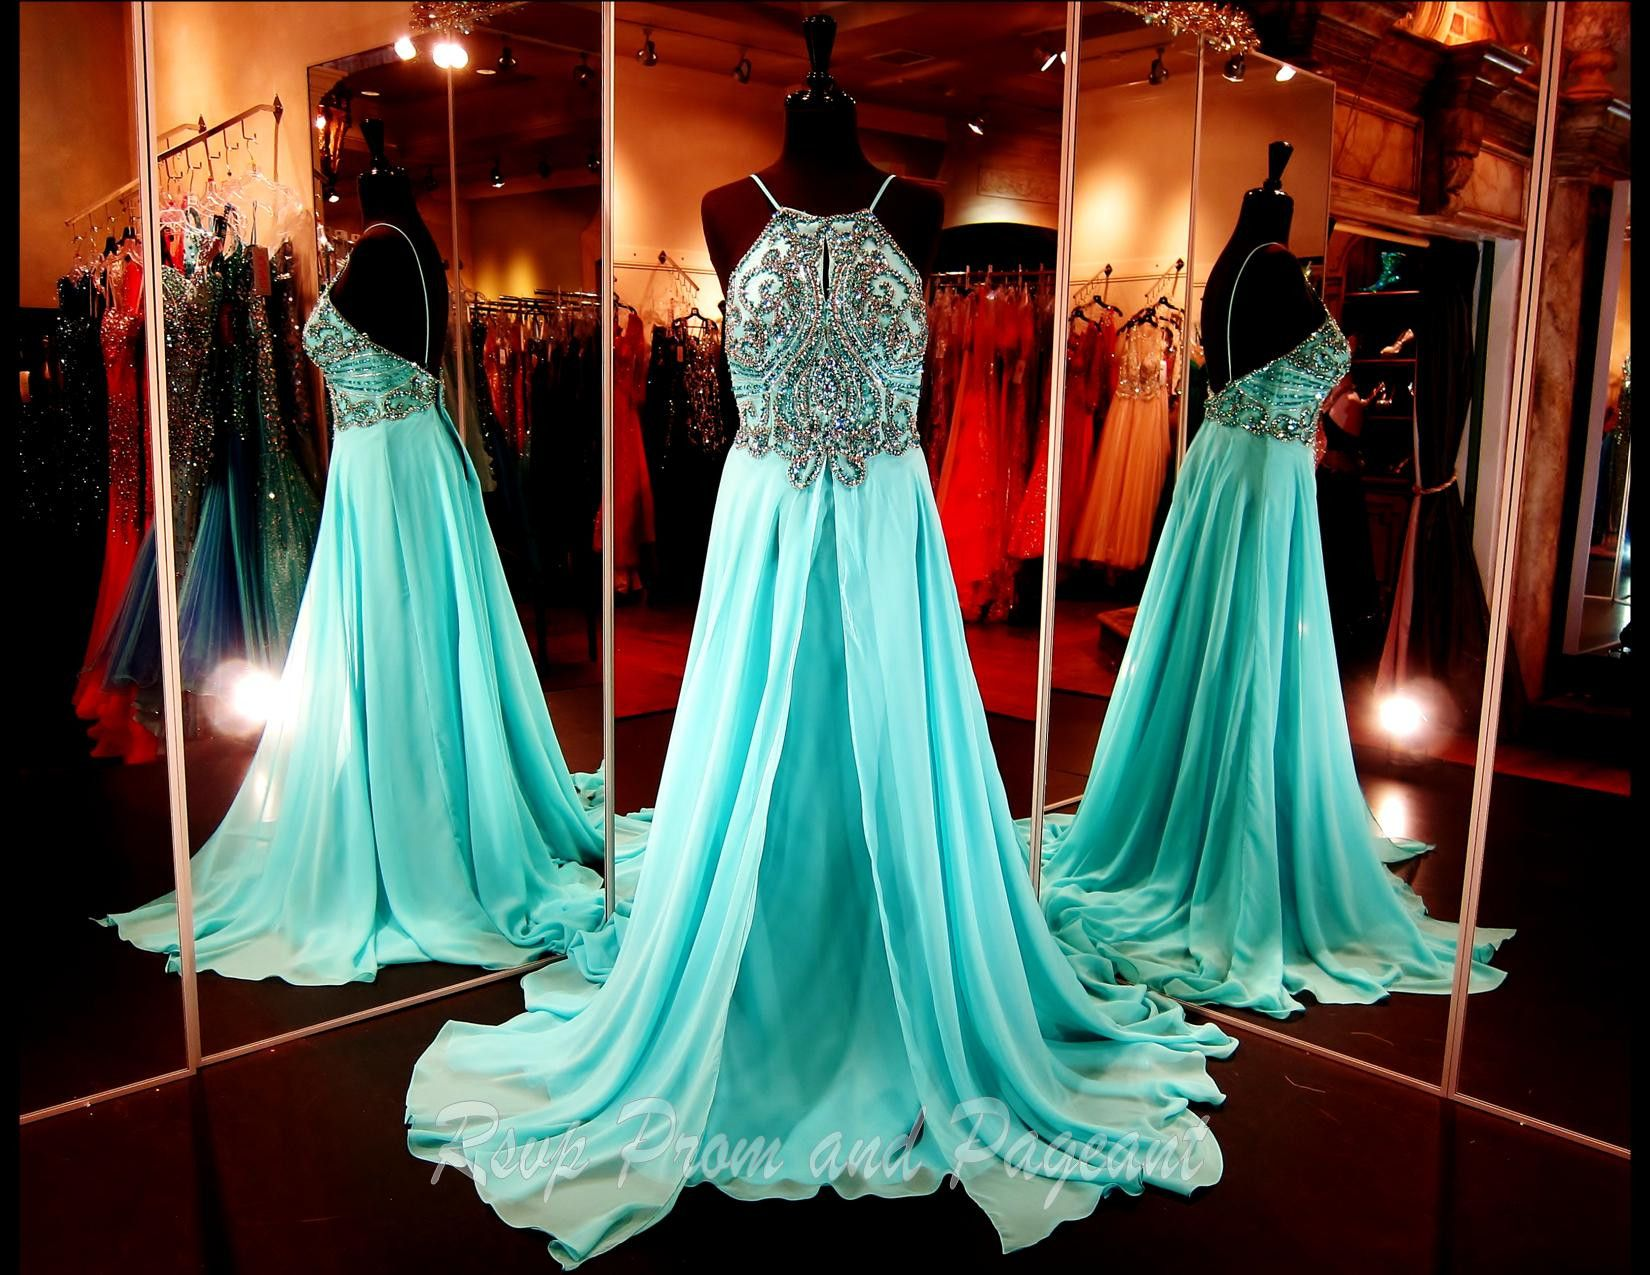 305 best prom dresses images on Pinterest | Formal dresses ...